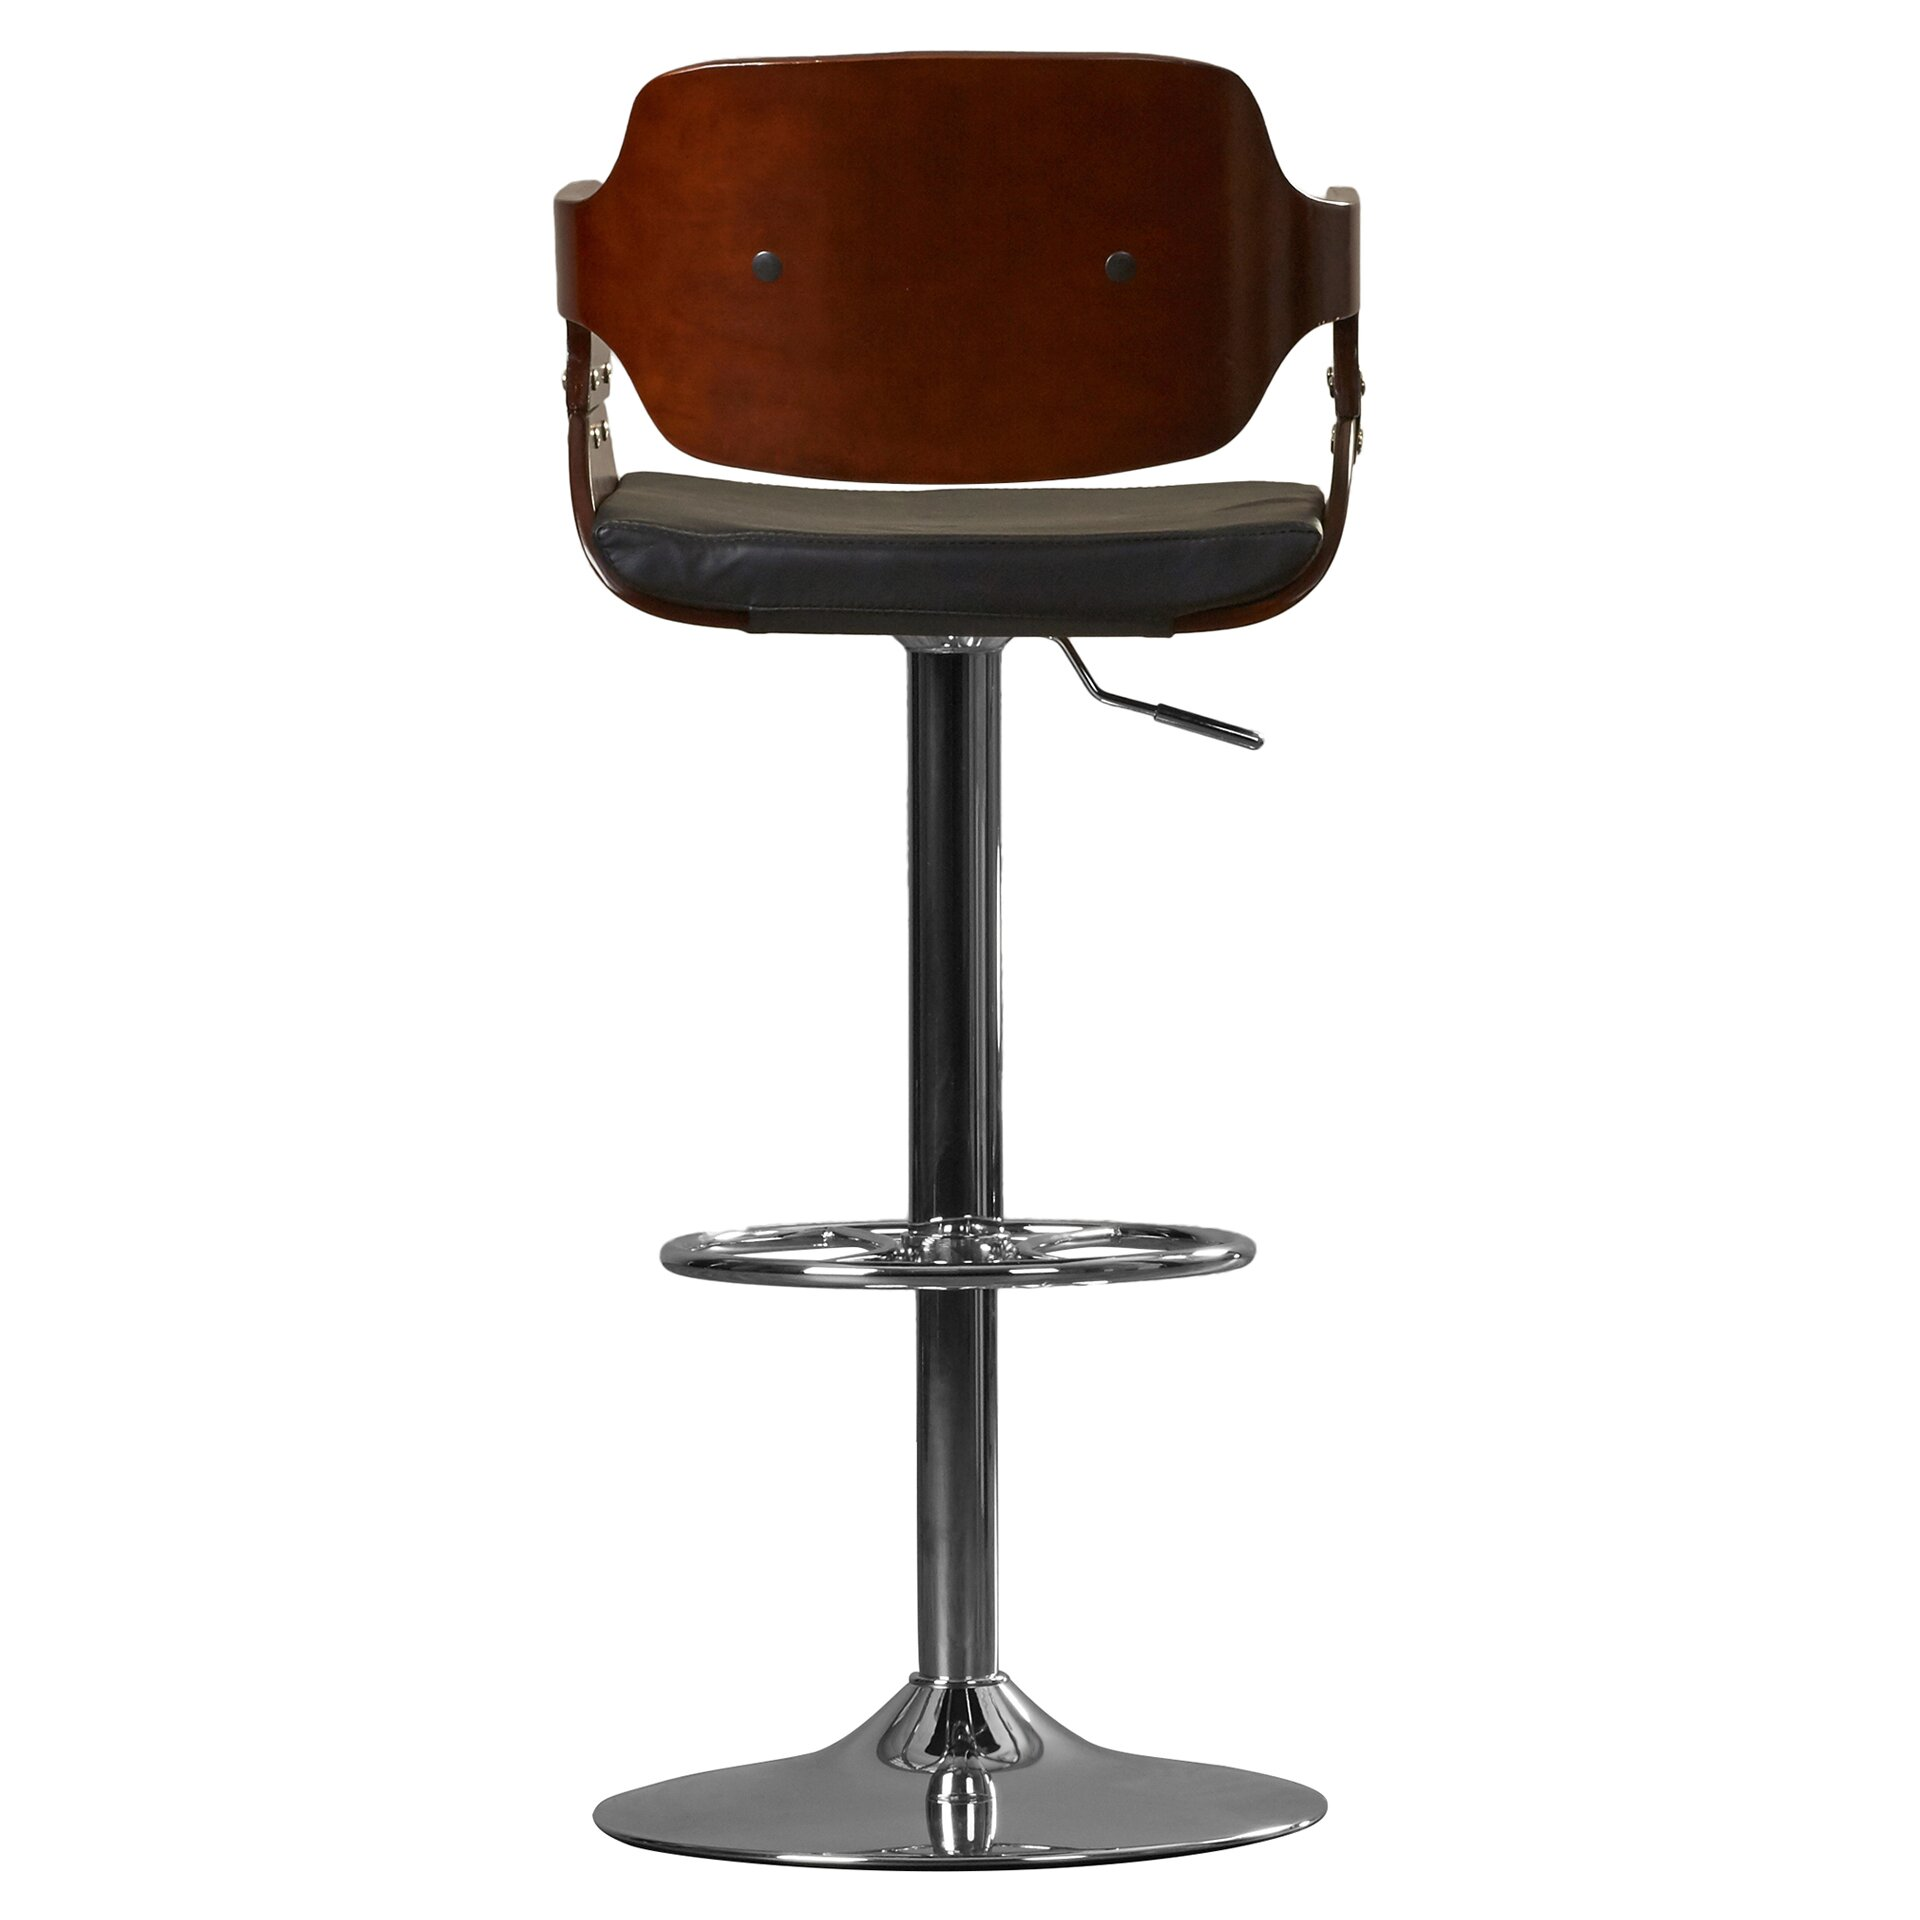 Corrigan Studio Adjustable Height Swivel Bar Stool